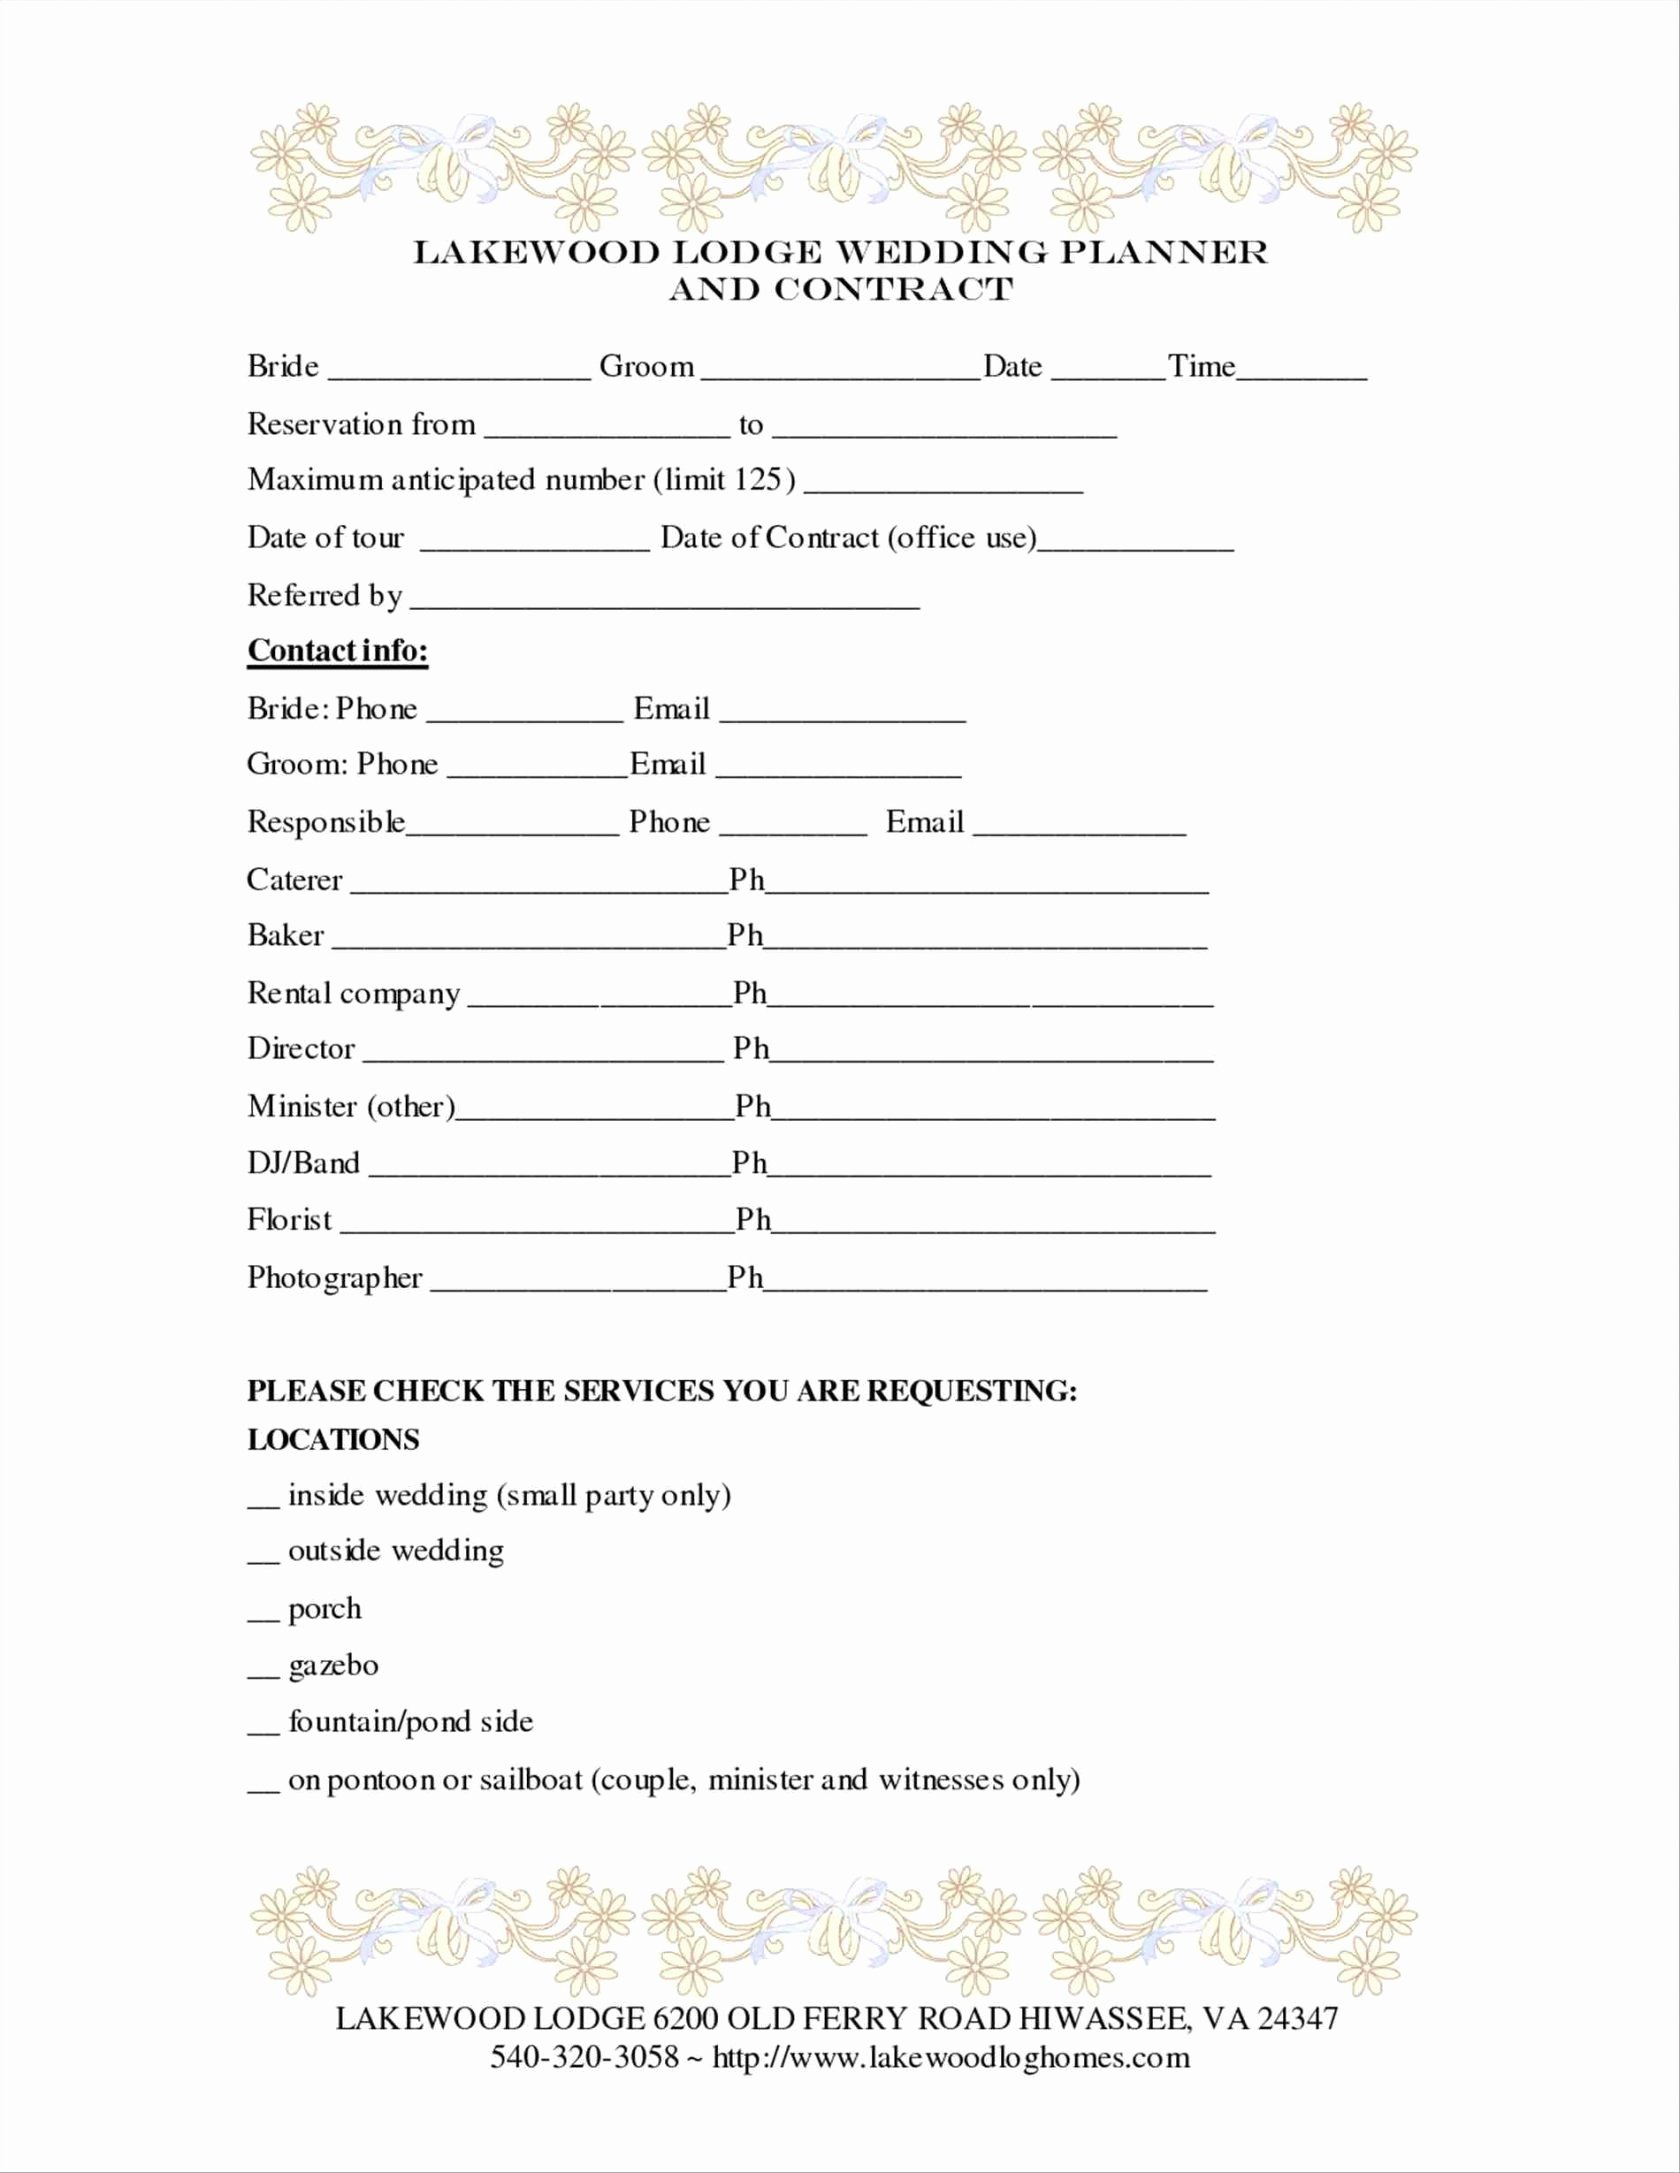 Portrait Photography Contract Template Awesome 3 4 Portrait Photography Contract Template